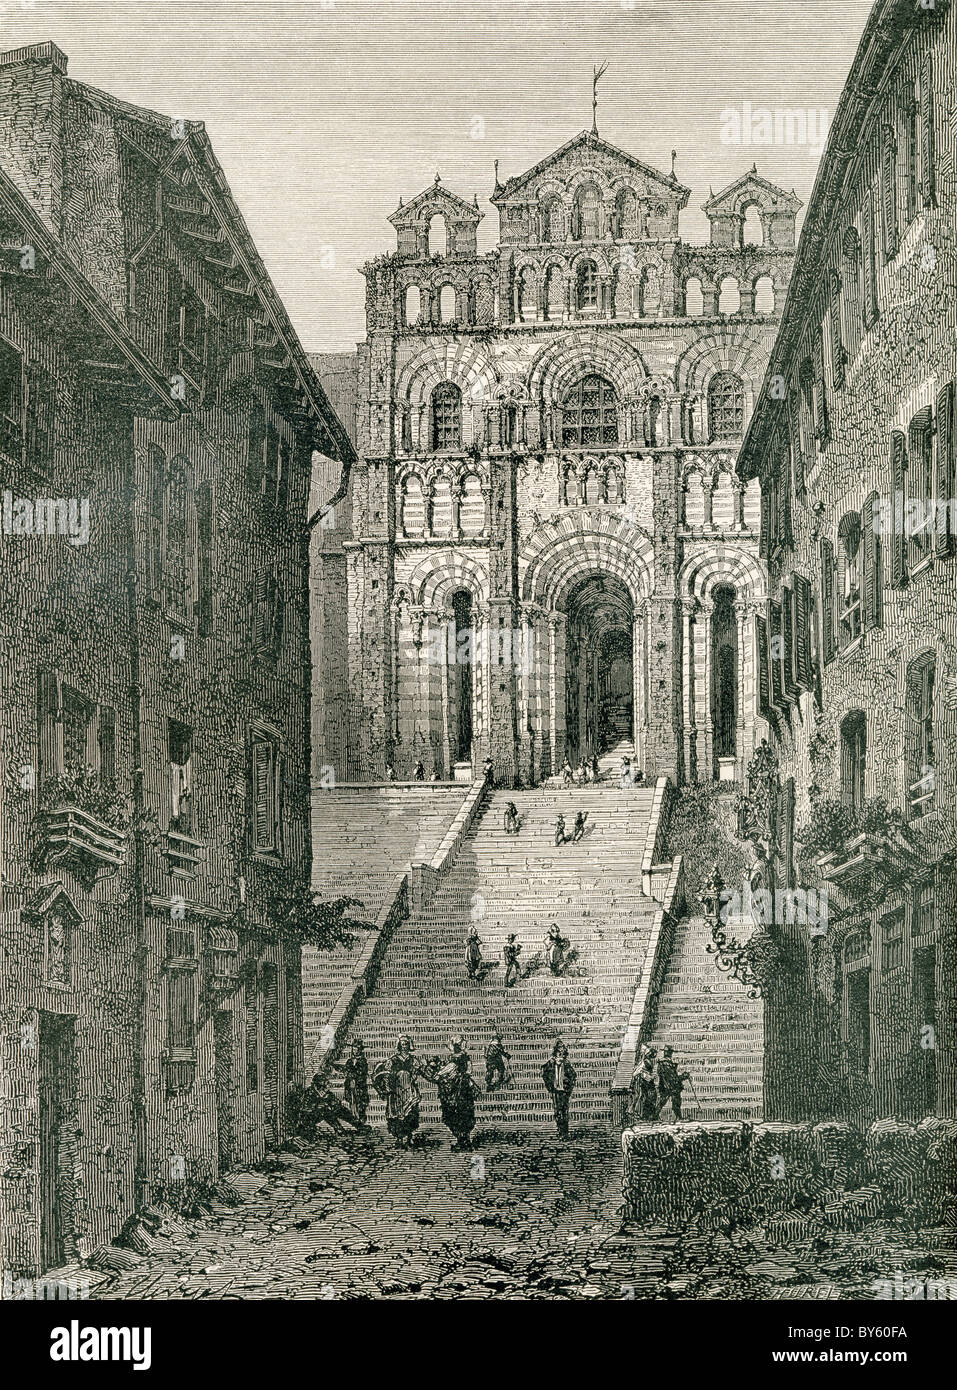 Le Puy Cathedral , Le Puy-en-Velay, Auvergne, France in the 19th century. - Stock Image